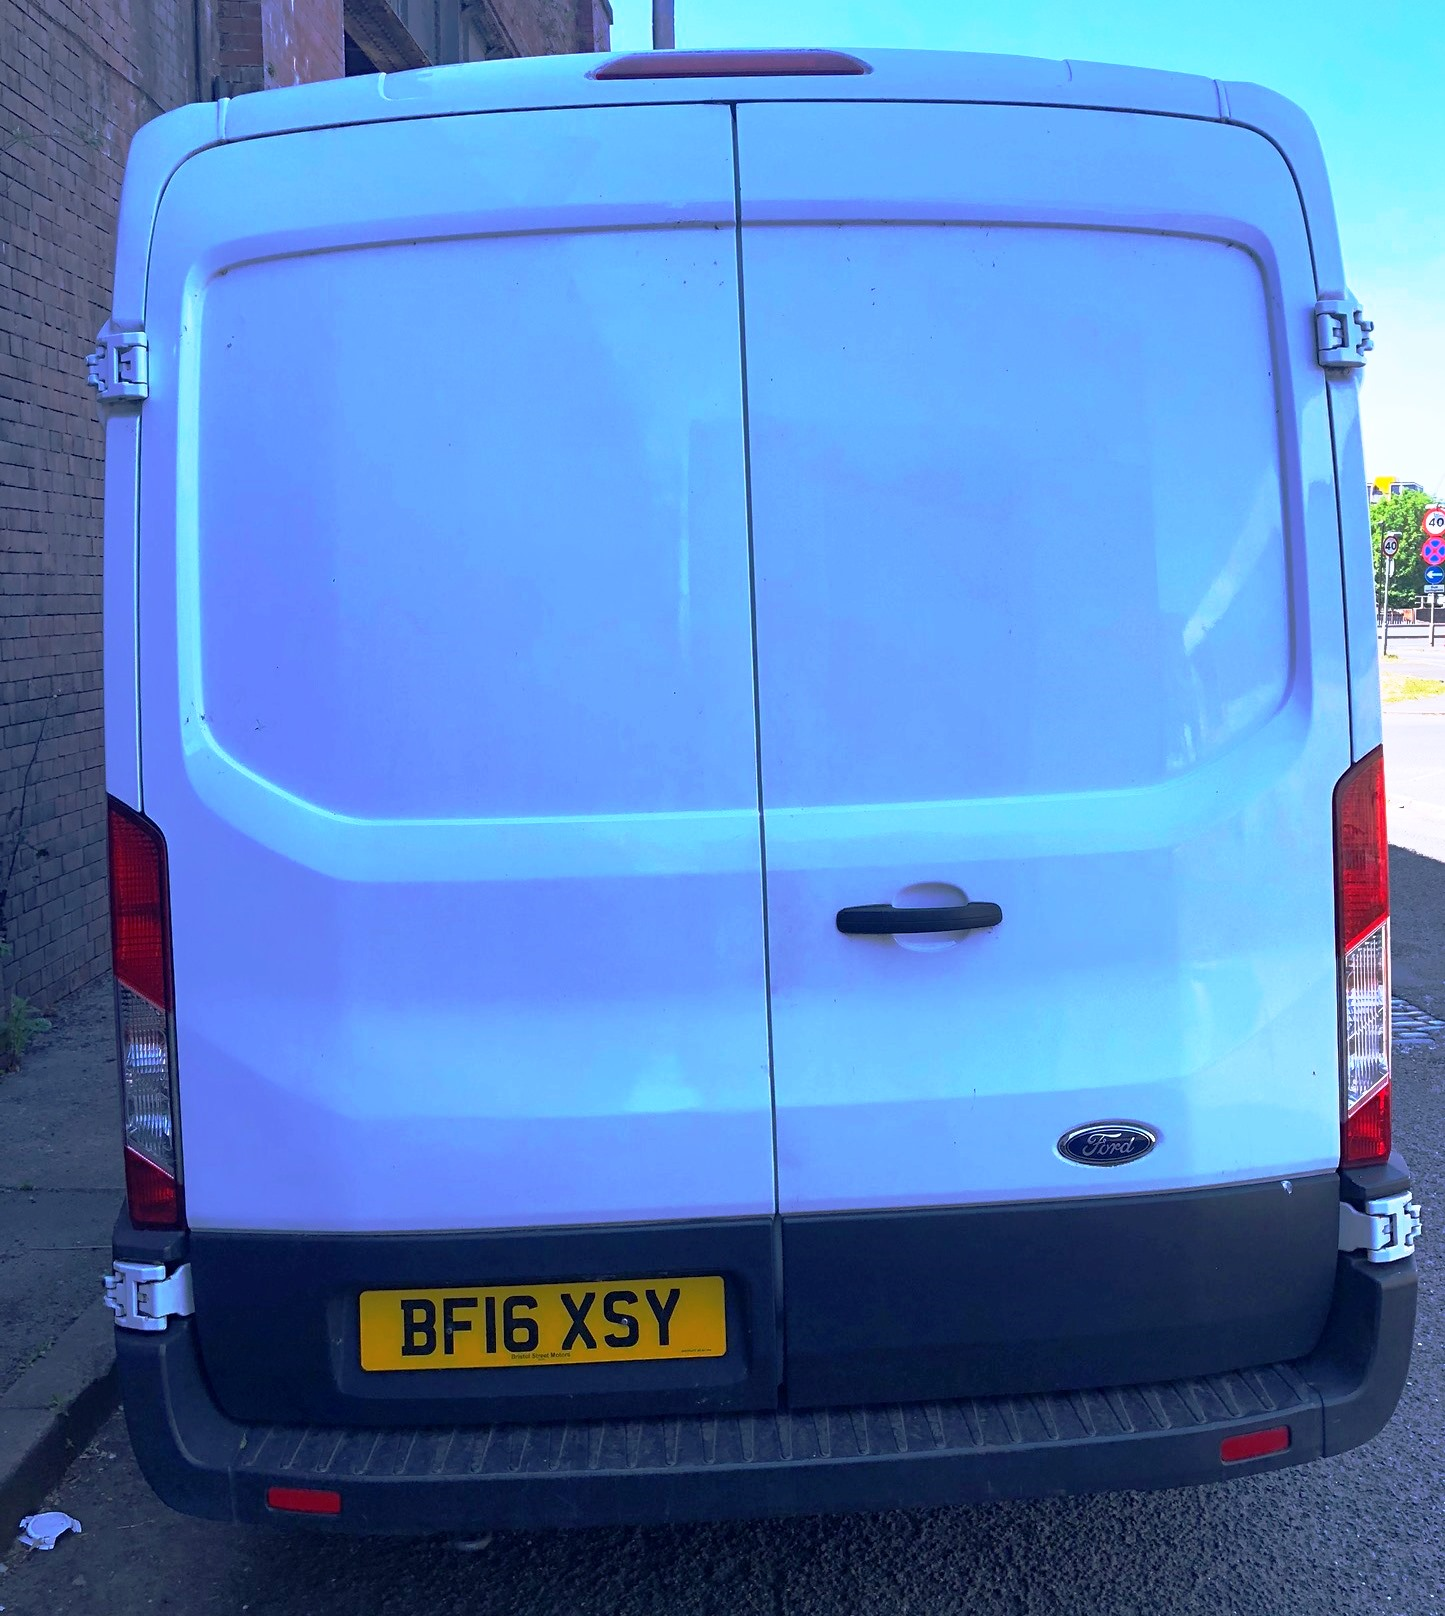 White Ford Transit 350 Econetic Tech Panel Van | Reg: BF16 XSY| 7 Seater | Mileage: 46,808 - Image 6 of 9